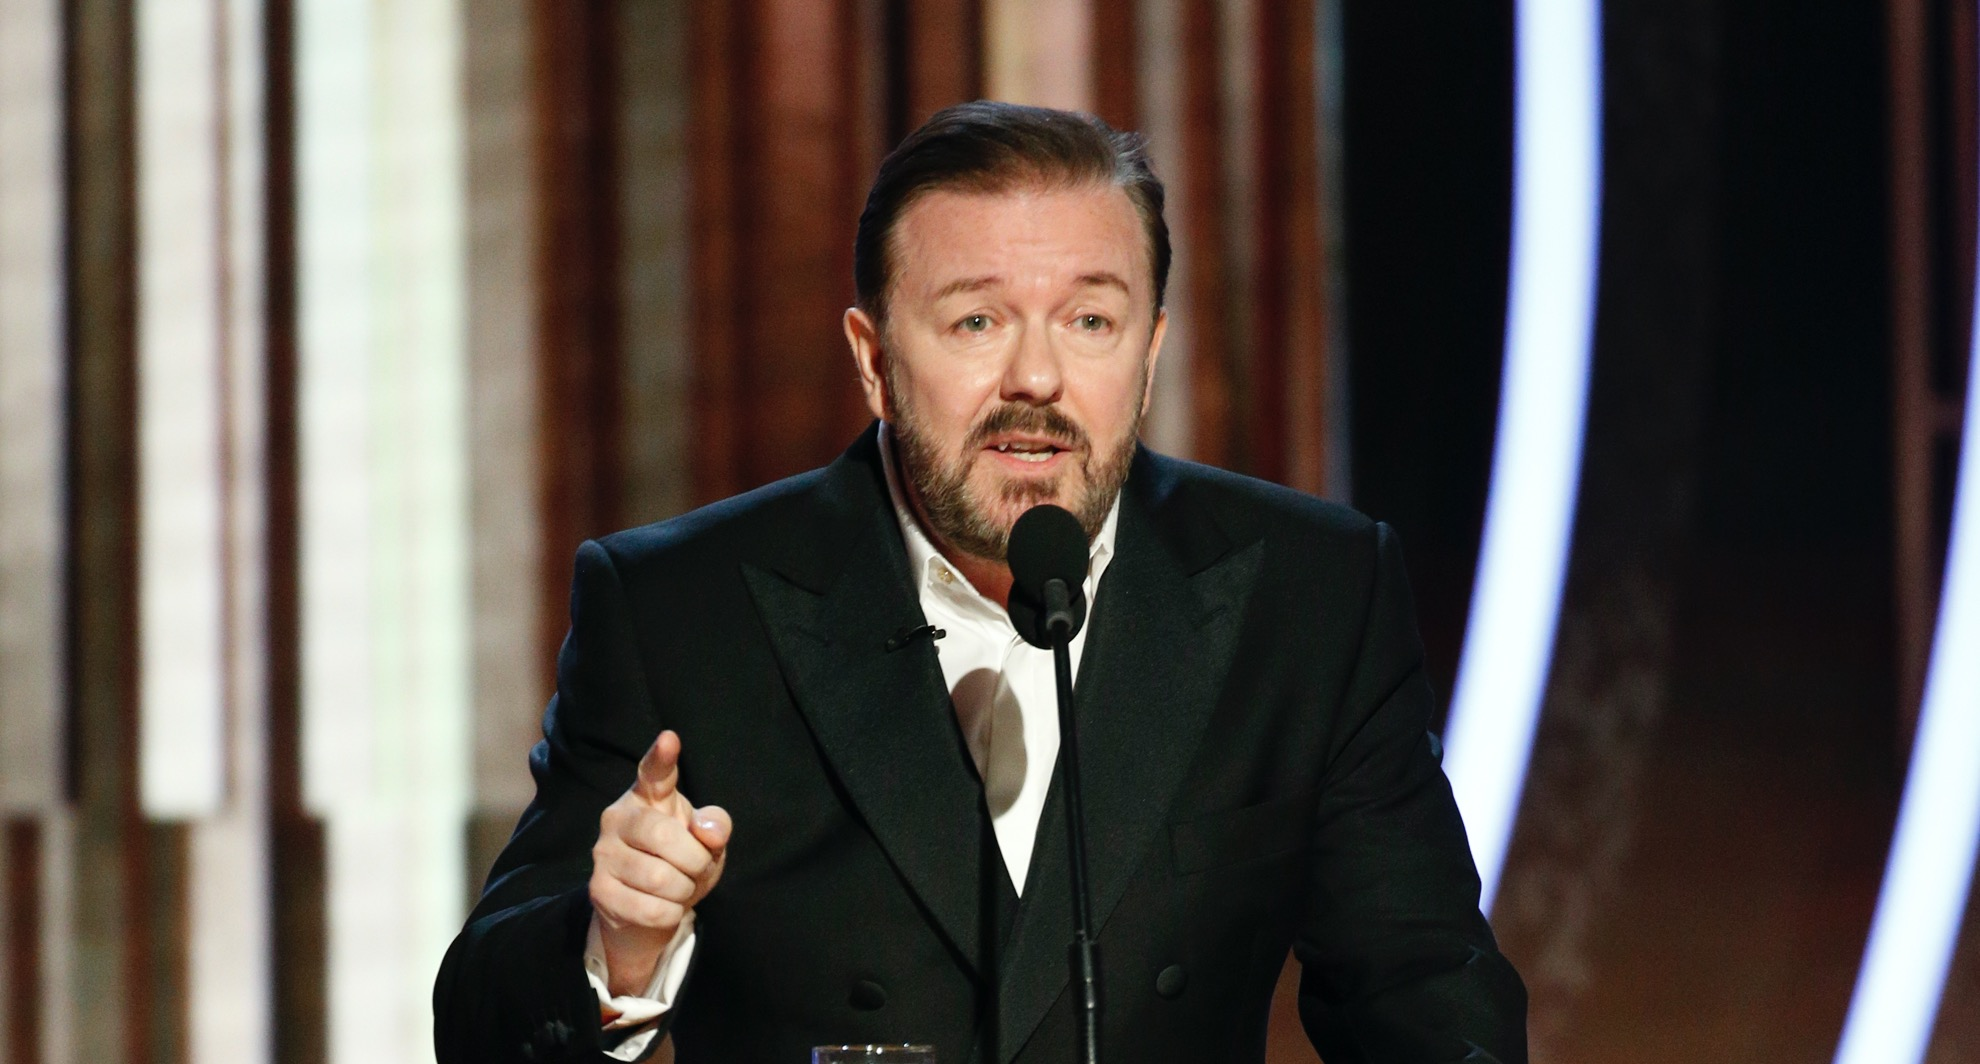 Ricky Gervais Explains Mistake People Make When They Hear His Jokes